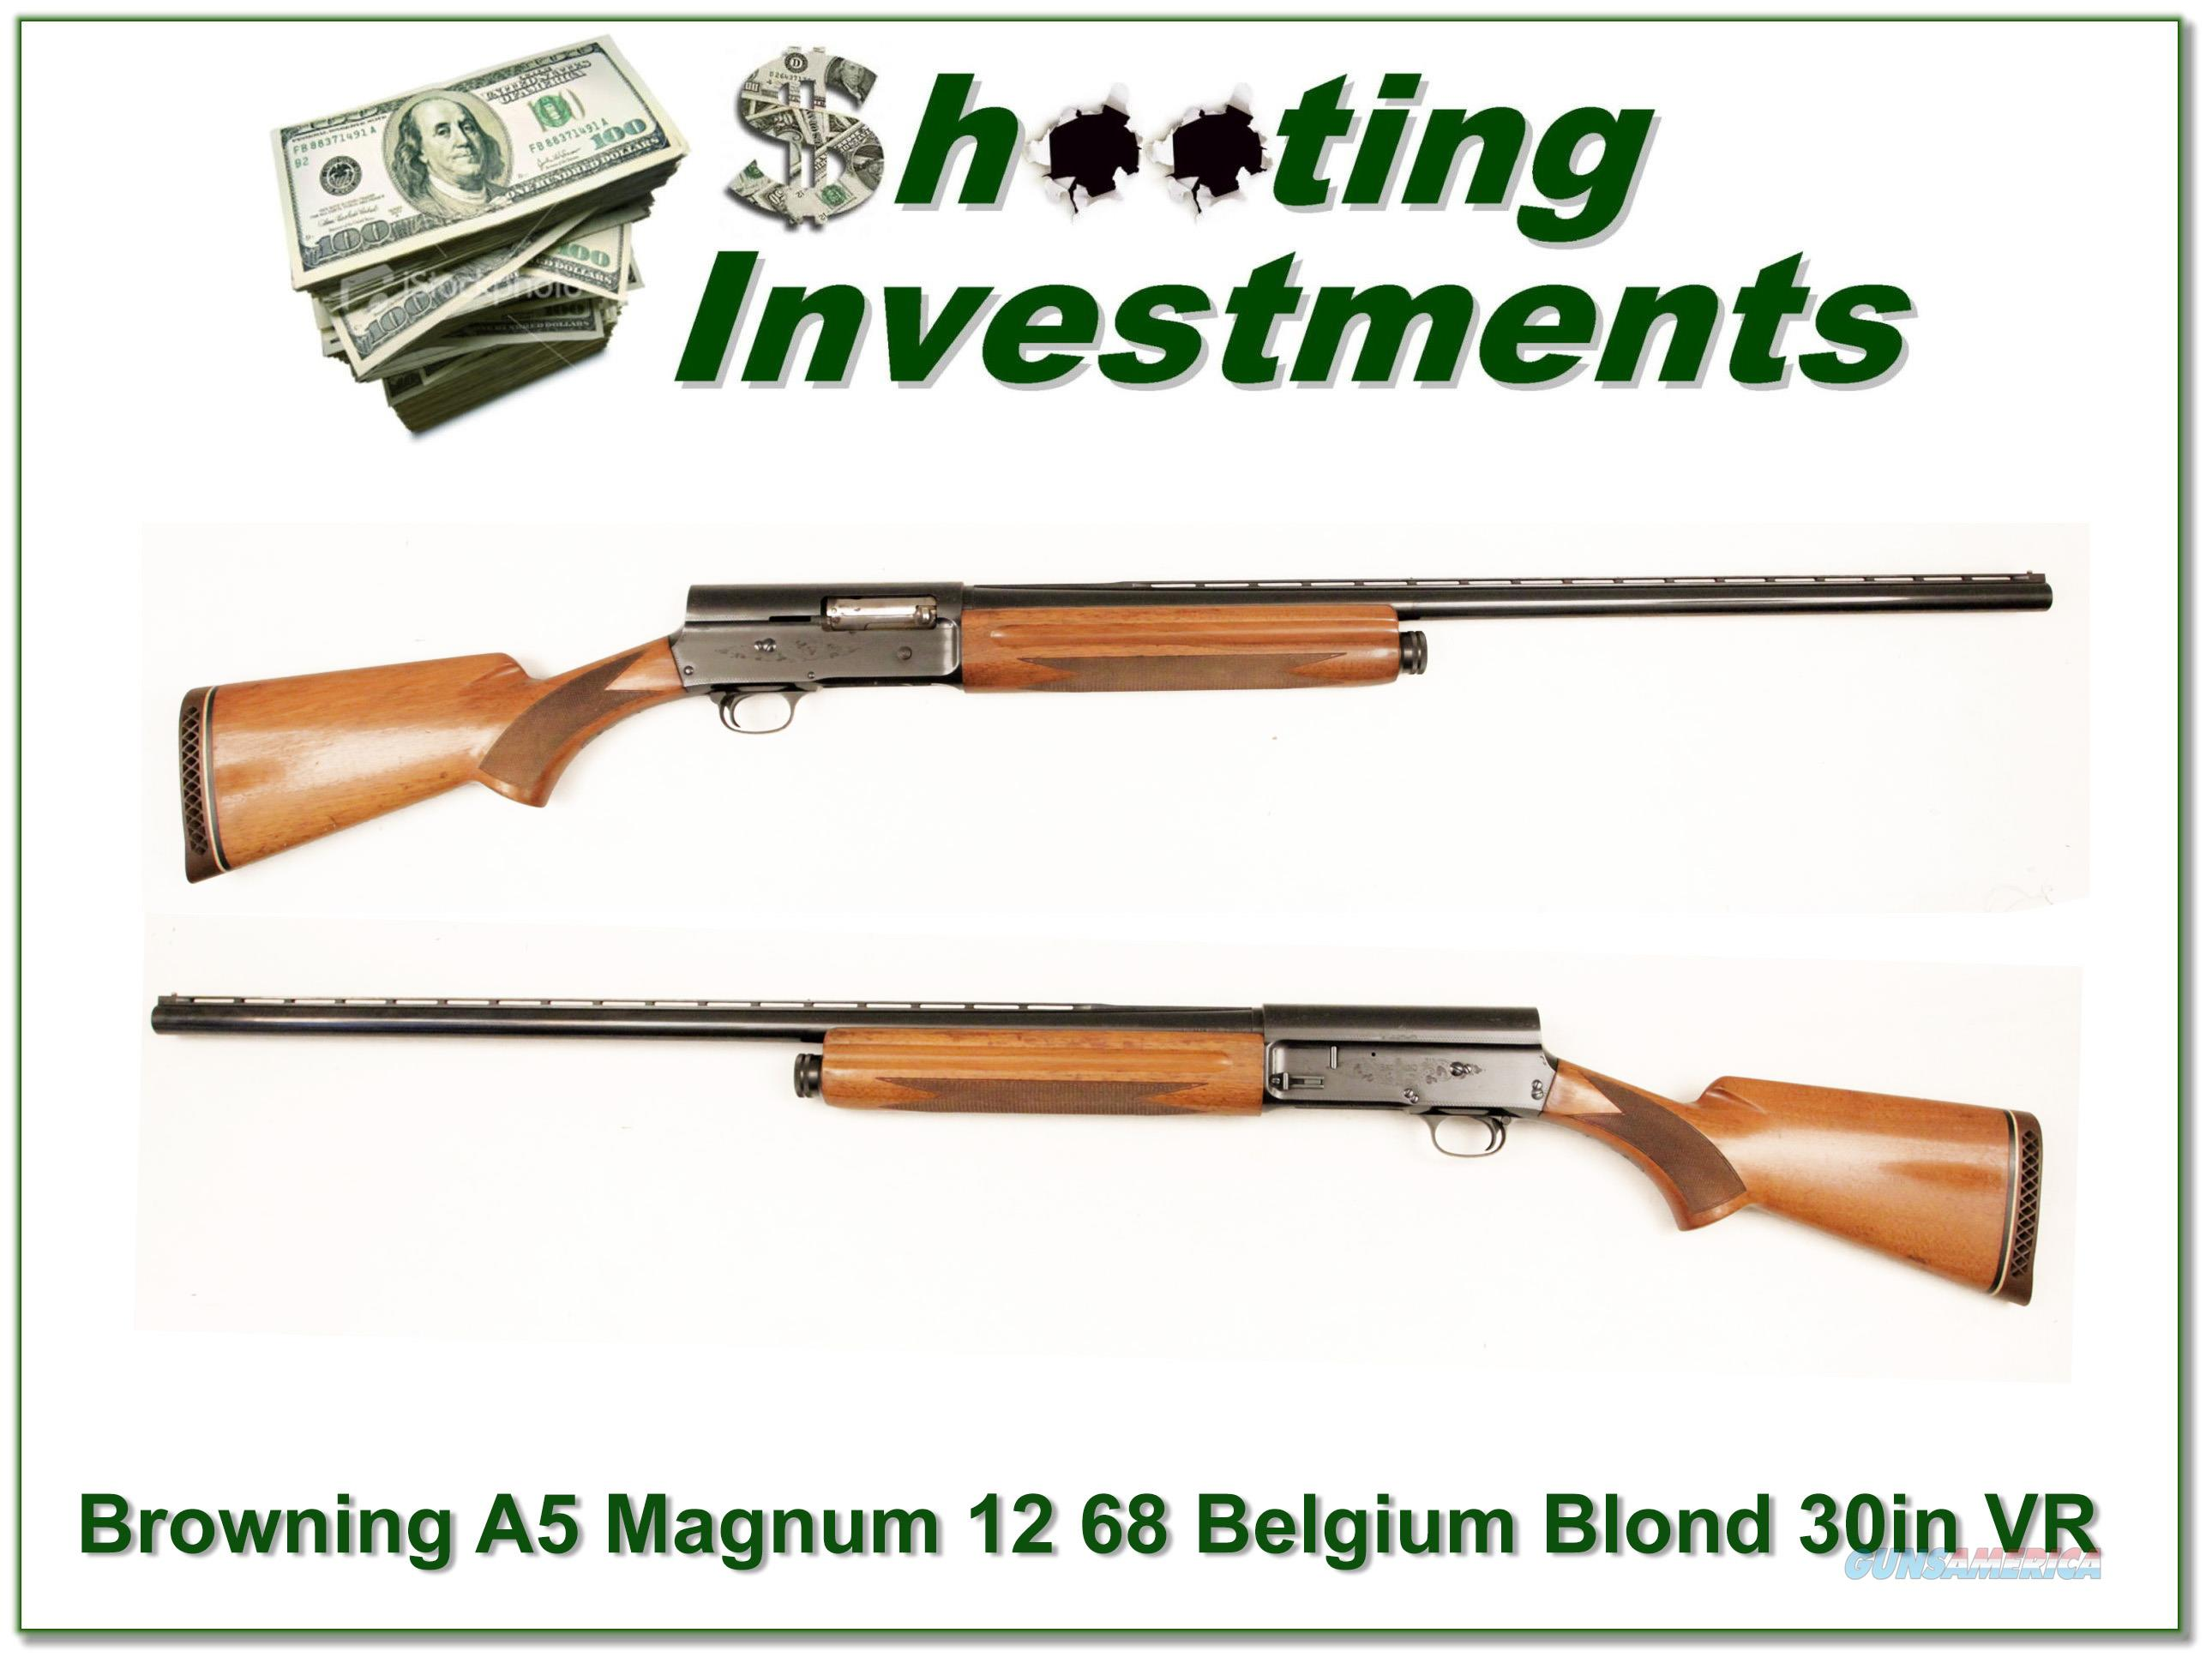 Browning A5 Magnum 12 68 Belgium Blond!  Guns > Shotguns > Browning Shotguns > Autoloaders > Hunting